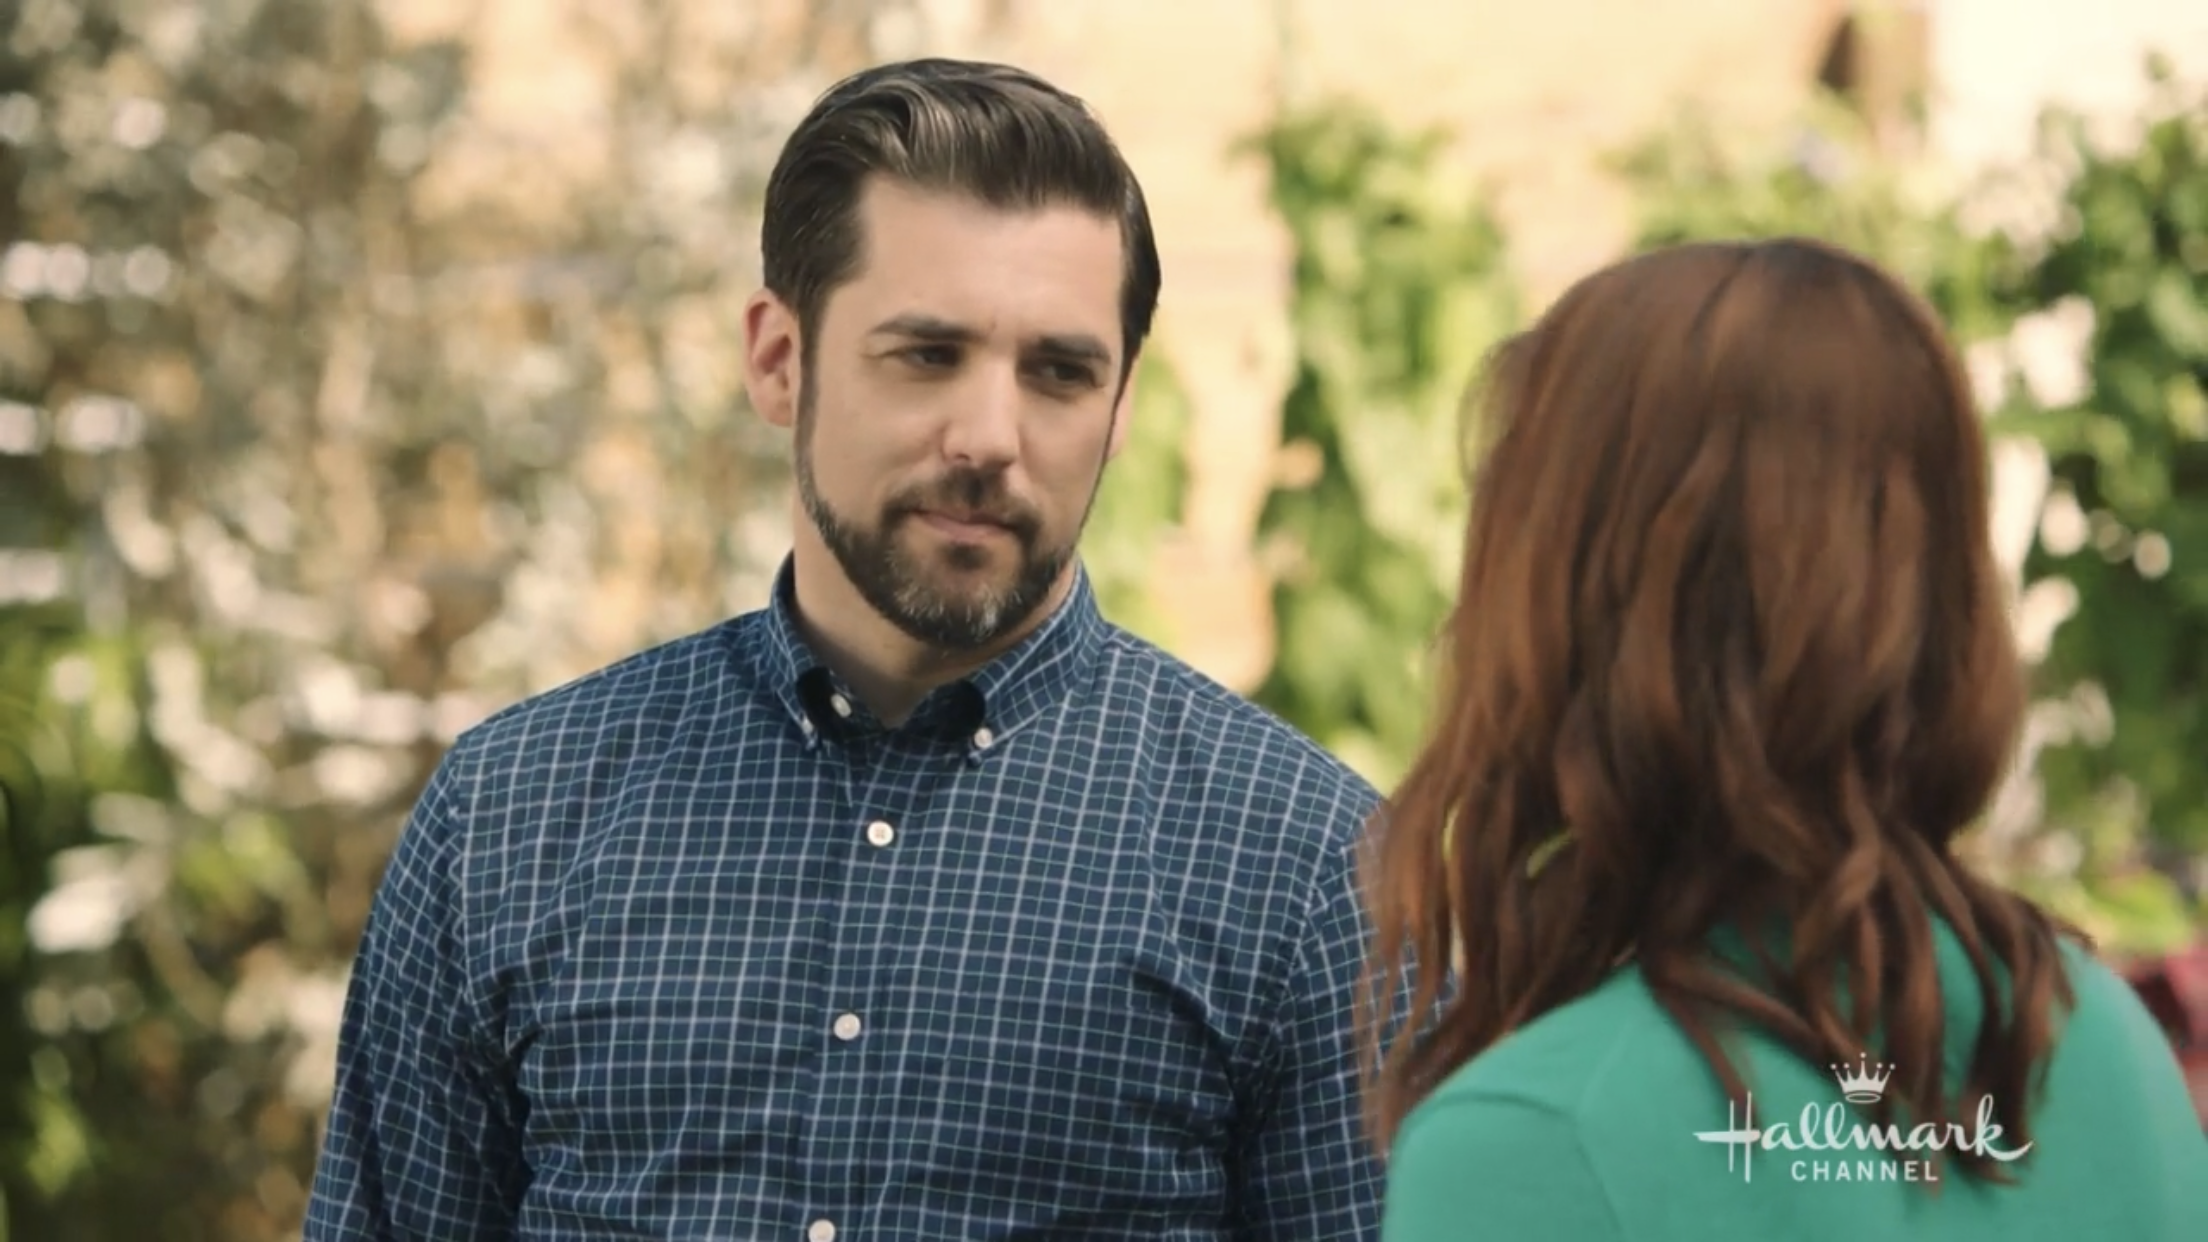 This grey stripe in Jordan Bridges' hair is everything I didn't know I needed.